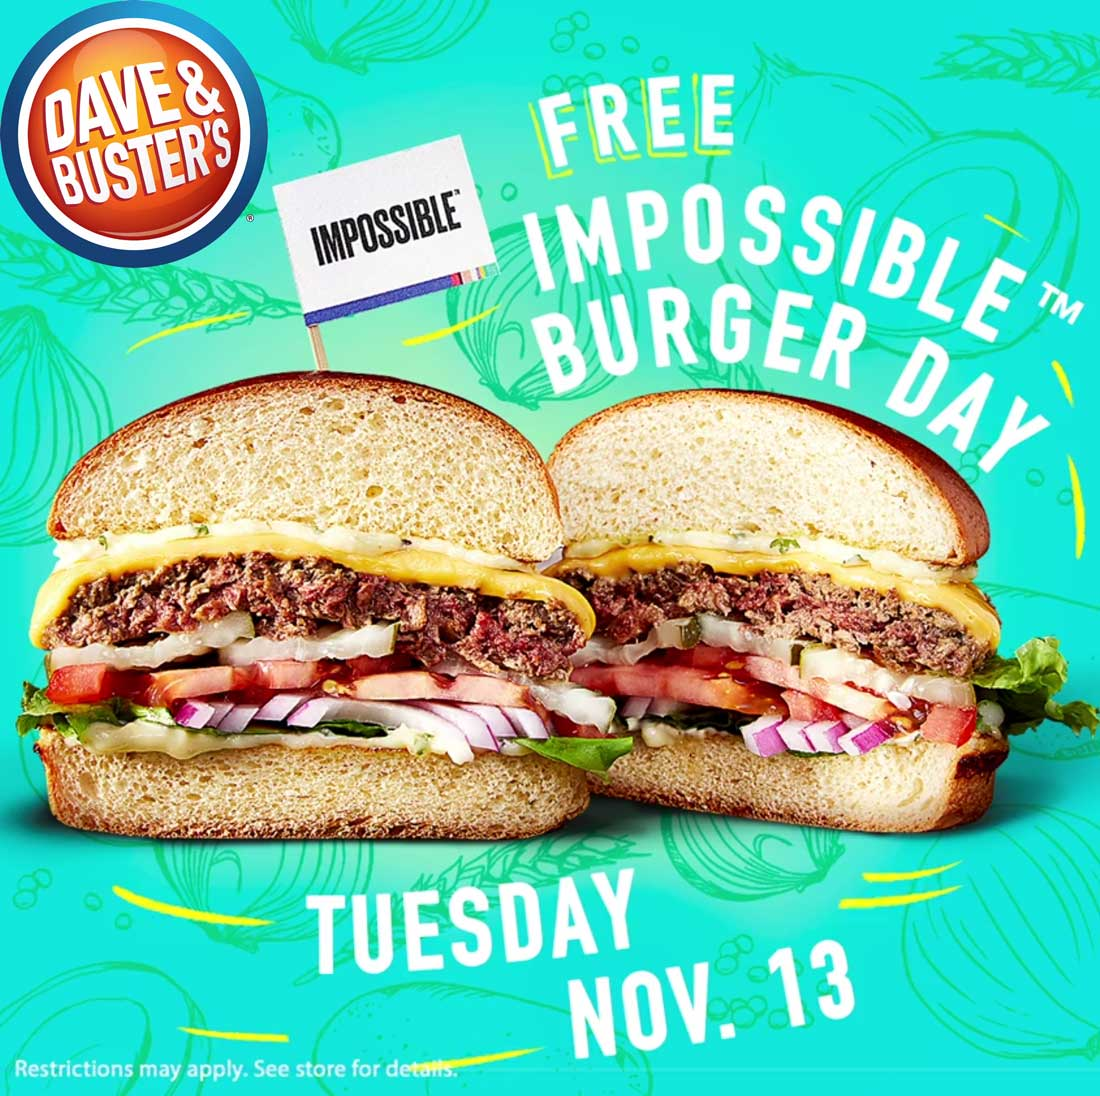 Dave & Busters Coupon June 2020 Free impossible cheeseburger Tuesday at Dave & Busters restaurants